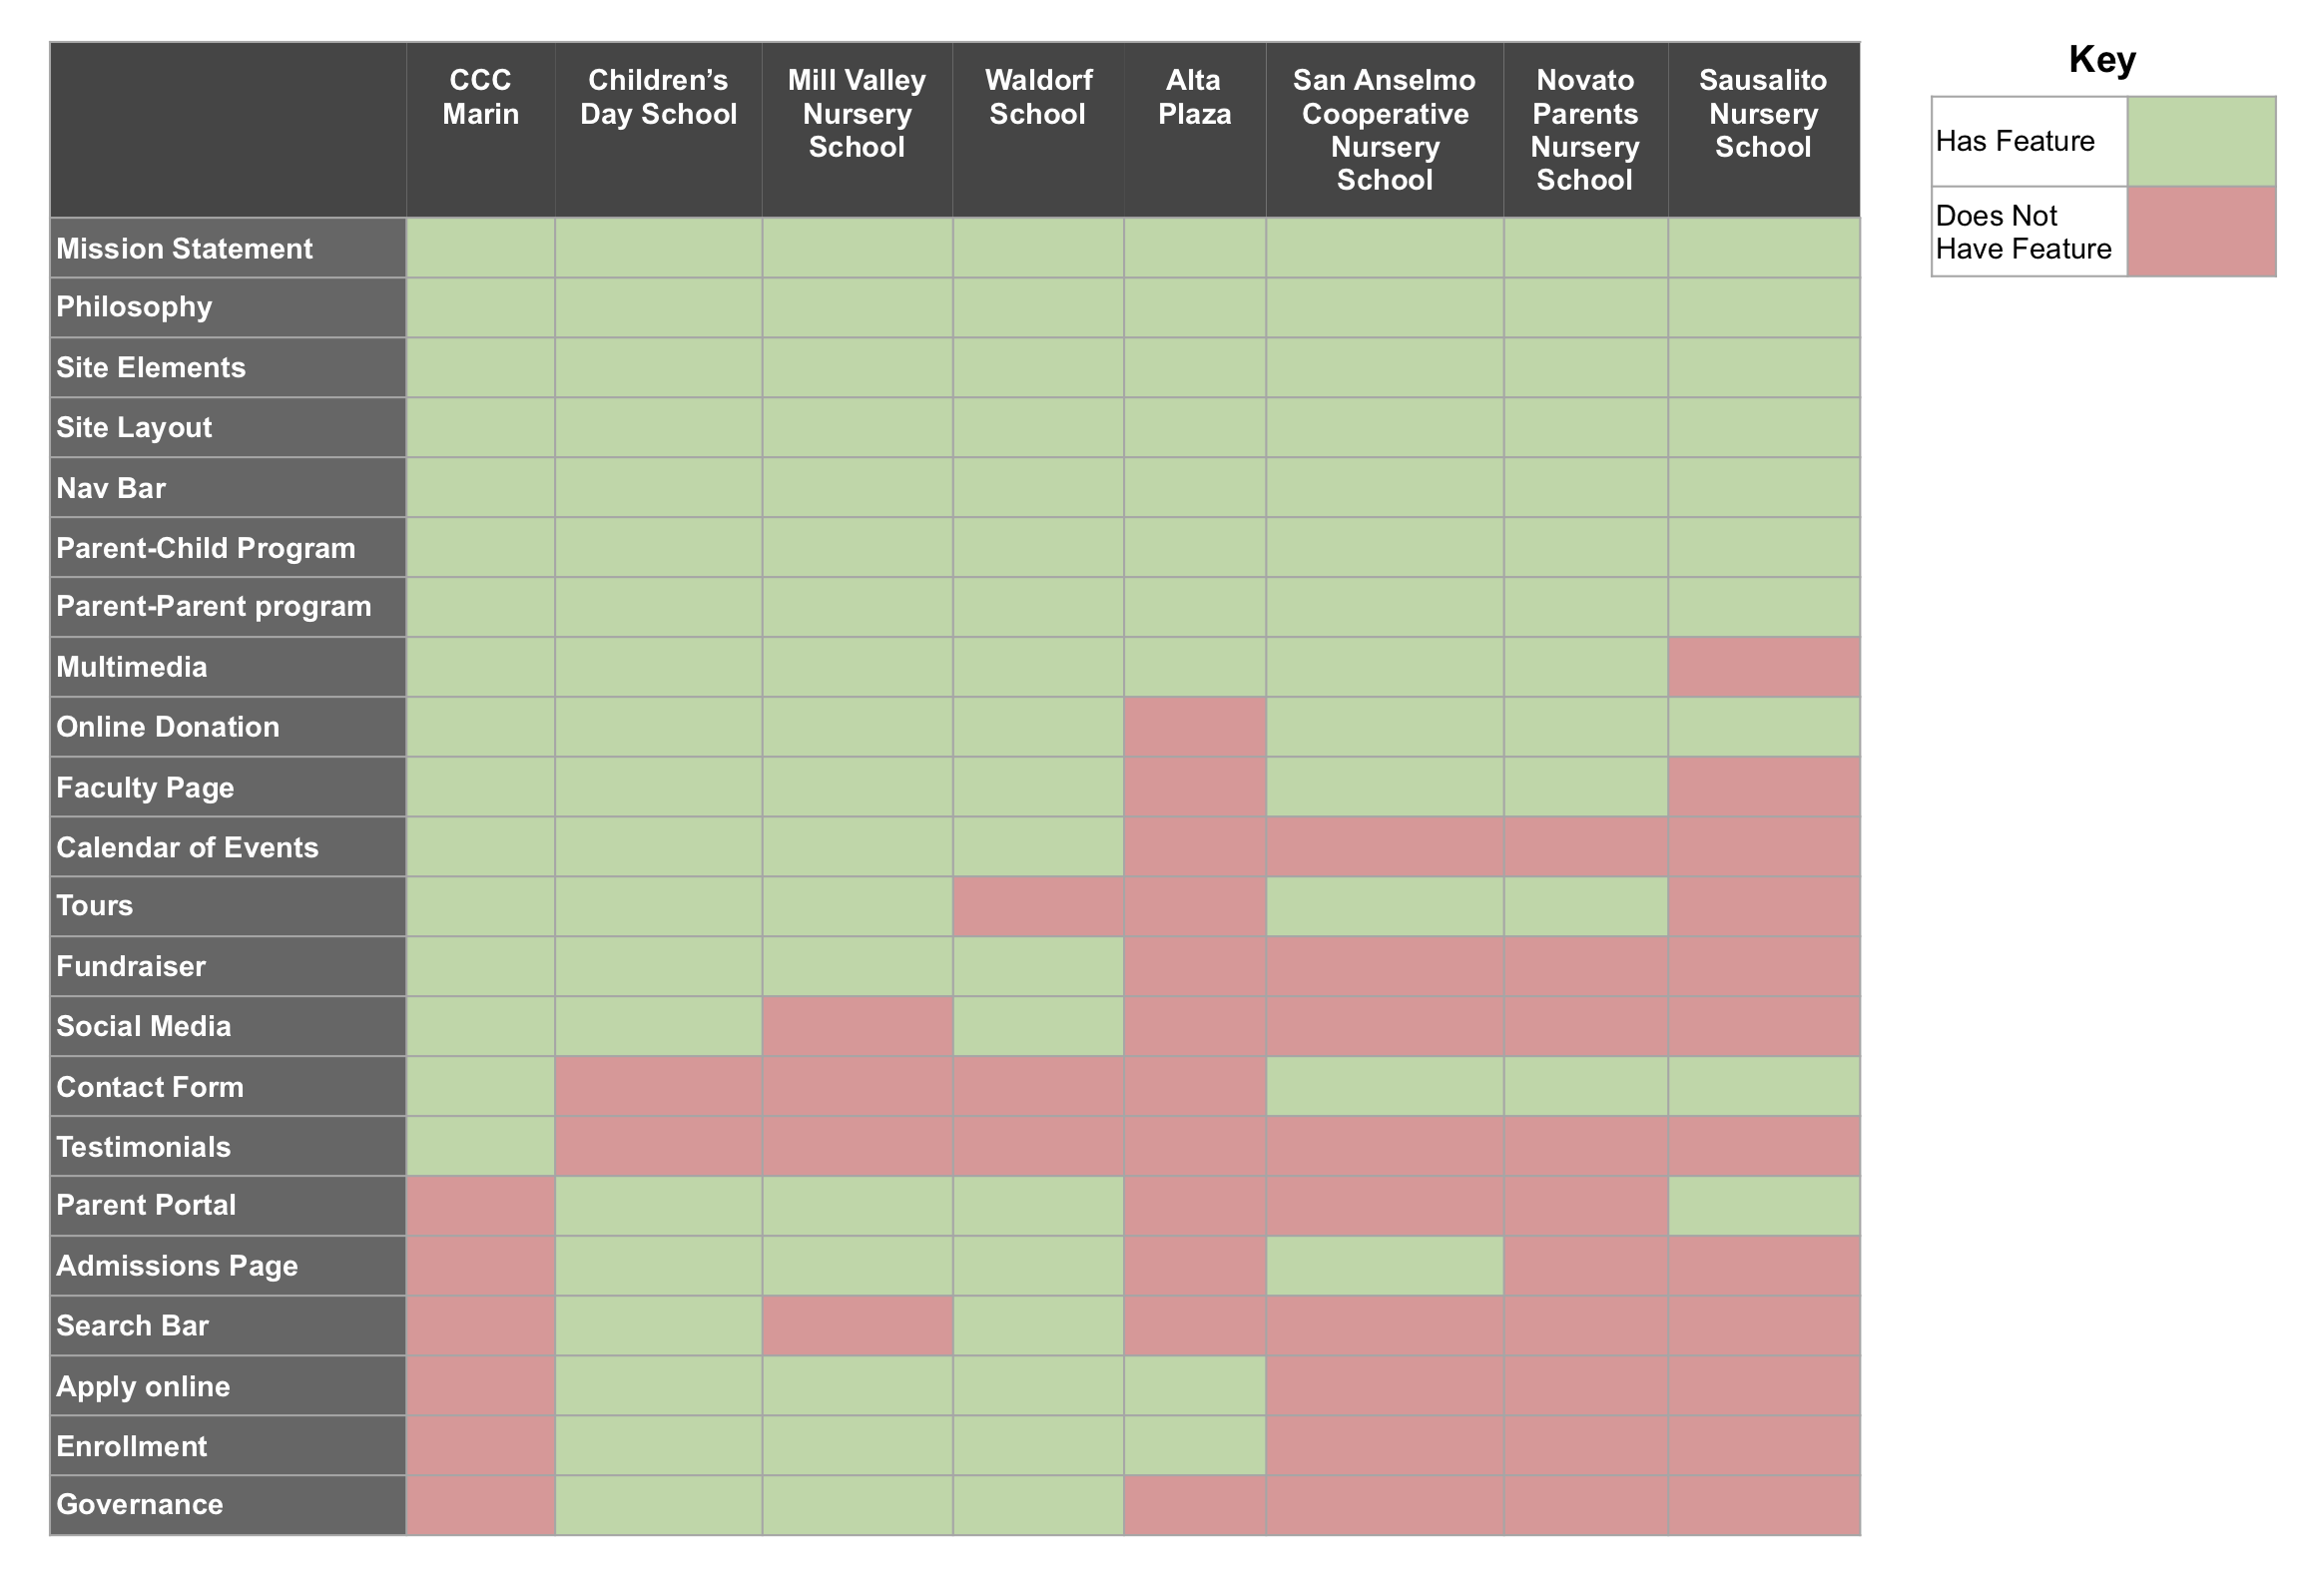 A chart showing the features and sections of various preschool websites in the area.